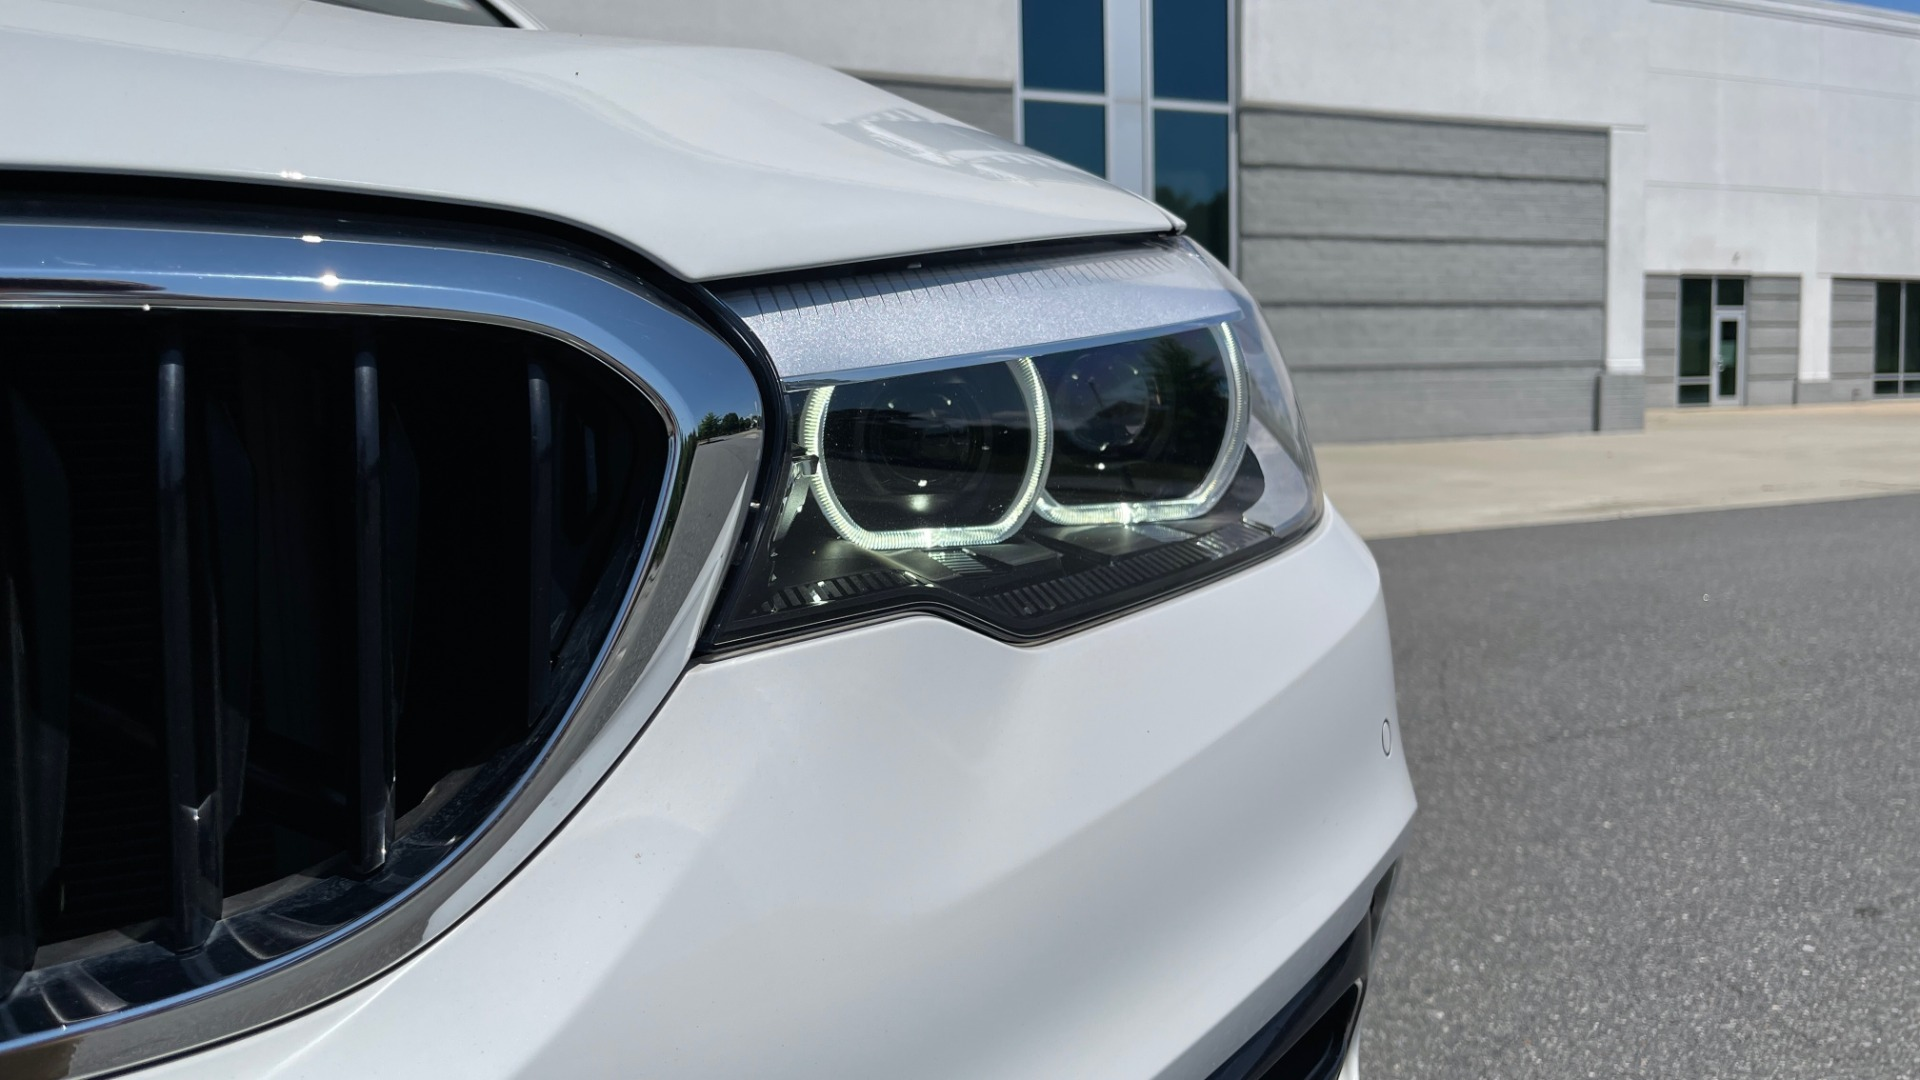 Used 2018 BMW 5 SERIES 540IXDRIVE PREMIUM / PARK ASSIST / KEYLESS ENTRY / SUNROOF / REARVIEW for sale $42,995 at Formula Imports in Charlotte NC 28227 12